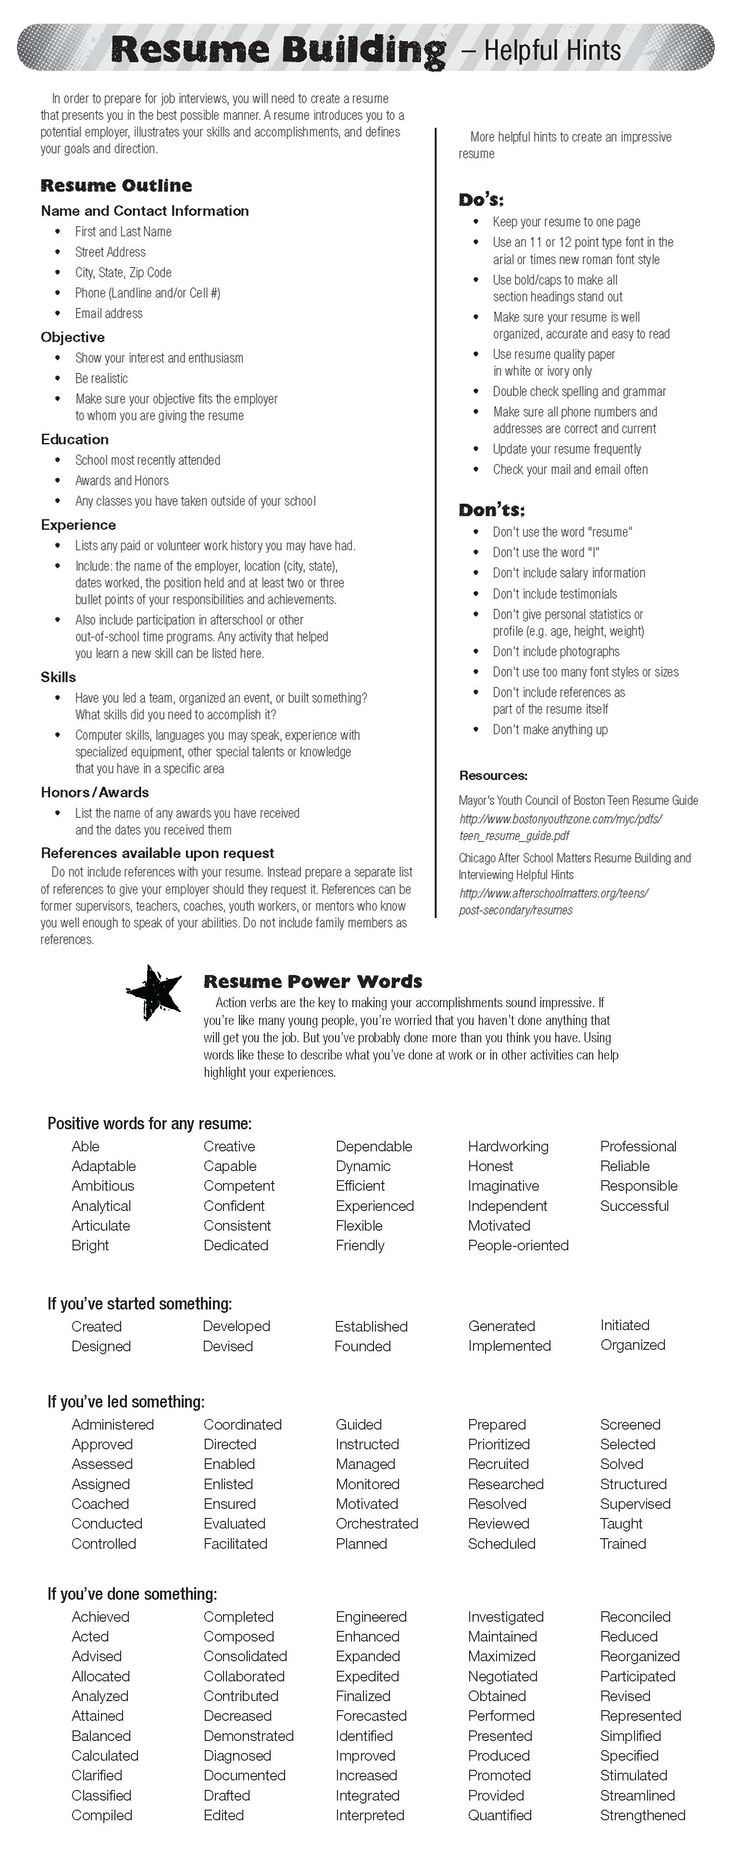 Opposenewapstandardsus  Gorgeous  Ideas About Resume On Pinterest  Cv Format Resume Cv And  With Glamorous  Ideas About Resume On Pinterest  Cv Format Resume Cv And Resume Templates With Awesome Marketing Resumes Also Dental Hygiene Resume In Addition It Director Resume And Healthcare Resume As Well As New Nurse Resume Additionally Free Resume Builder Online No Cost From Pinterestcom With Opposenewapstandardsus  Glamorous  Ideas About Resume On Pinterest  Cv Format Resume Cv And  With Awesome  Ideas About Resume On Pinterest  Cv Format Resume Cv And Resume Templates And Gorgeous Marketing Resumes Also Dental Hygiene Resume In Addition It Director Resume From Pinterestcom